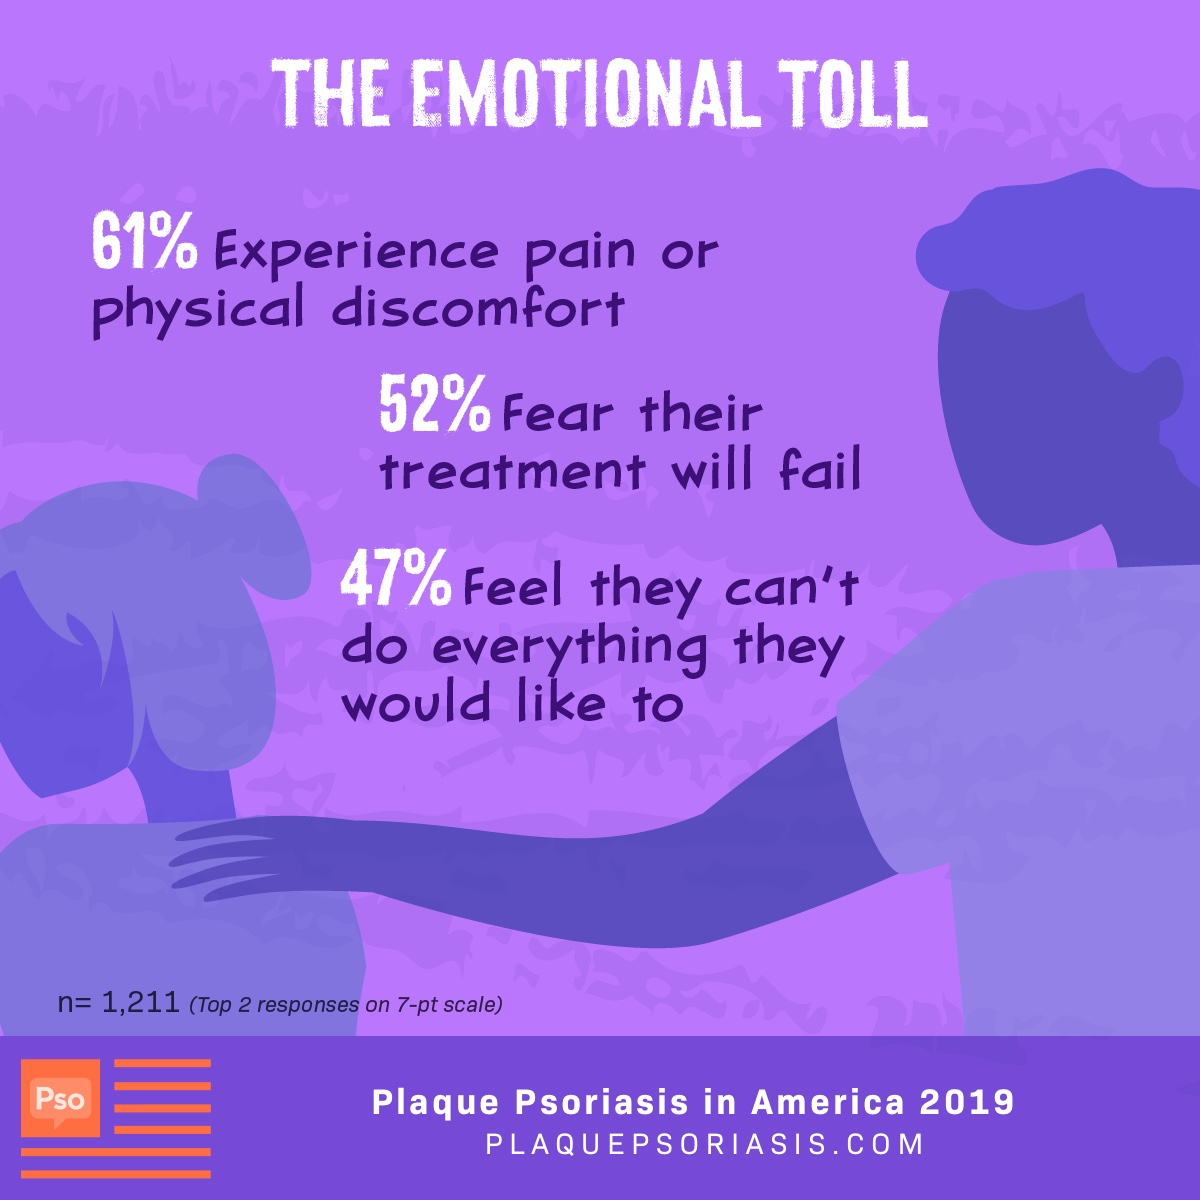 61% experience physical discomfort or pain. 52% of patients fear their treatment will fail and 47% feel they can't do everything they would like because of psoriasis.